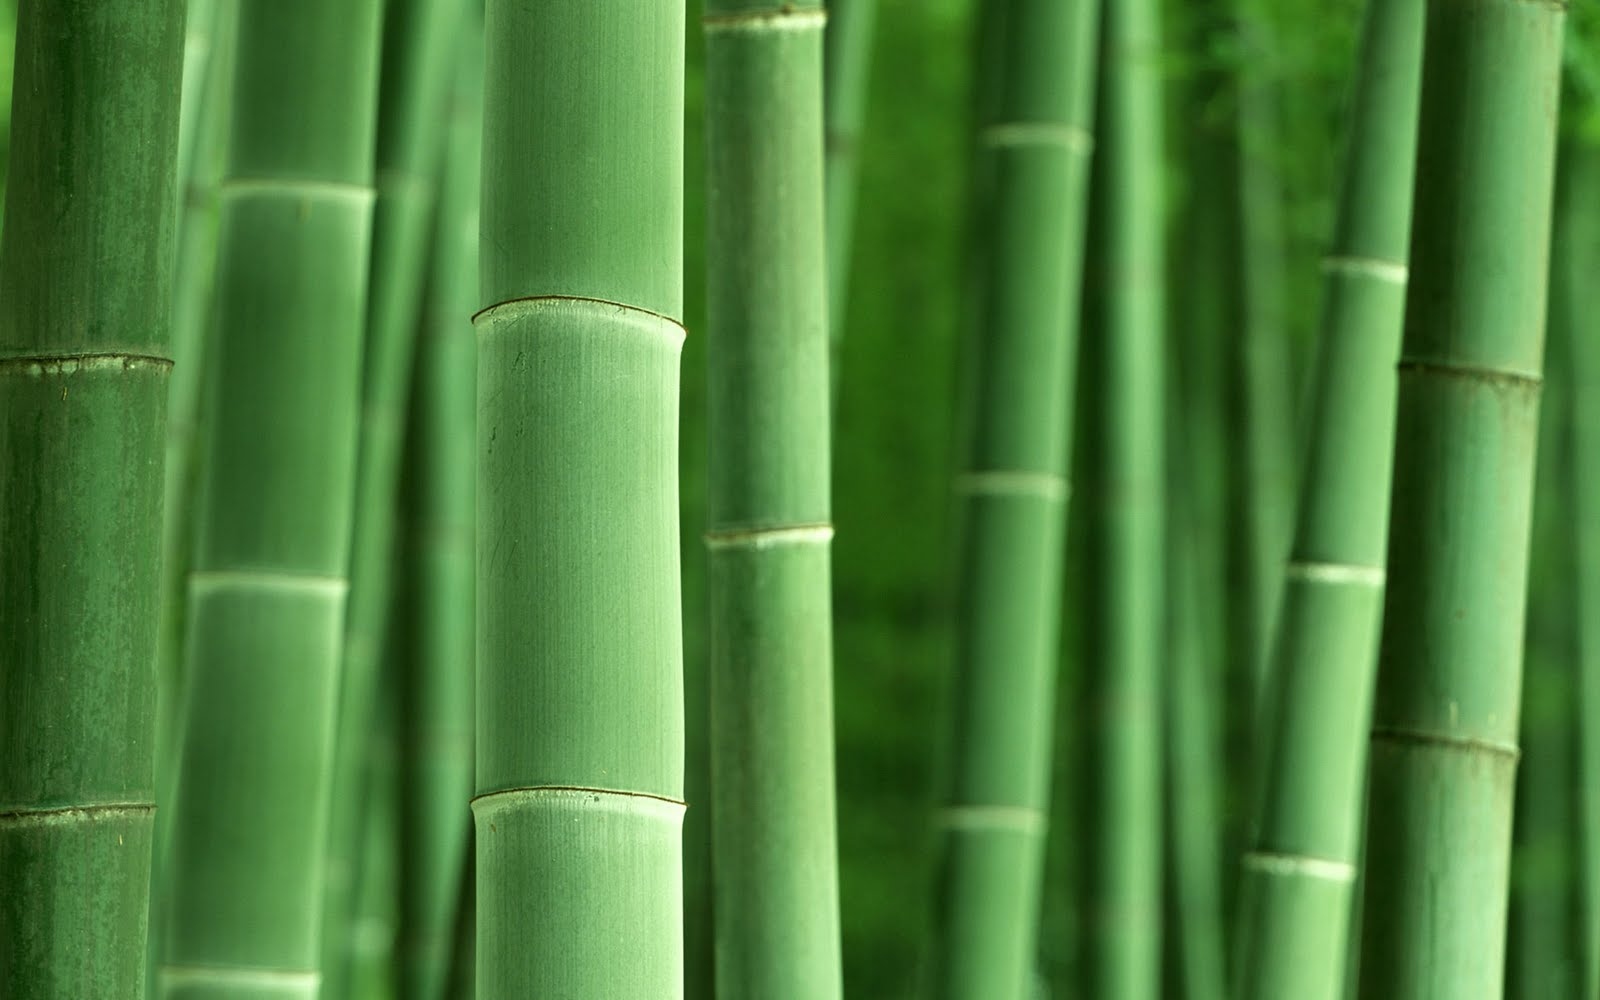 Wallpapers box amazing bamboo 1920x1200 hd wallpapers for Bamboo wallpaper for walls